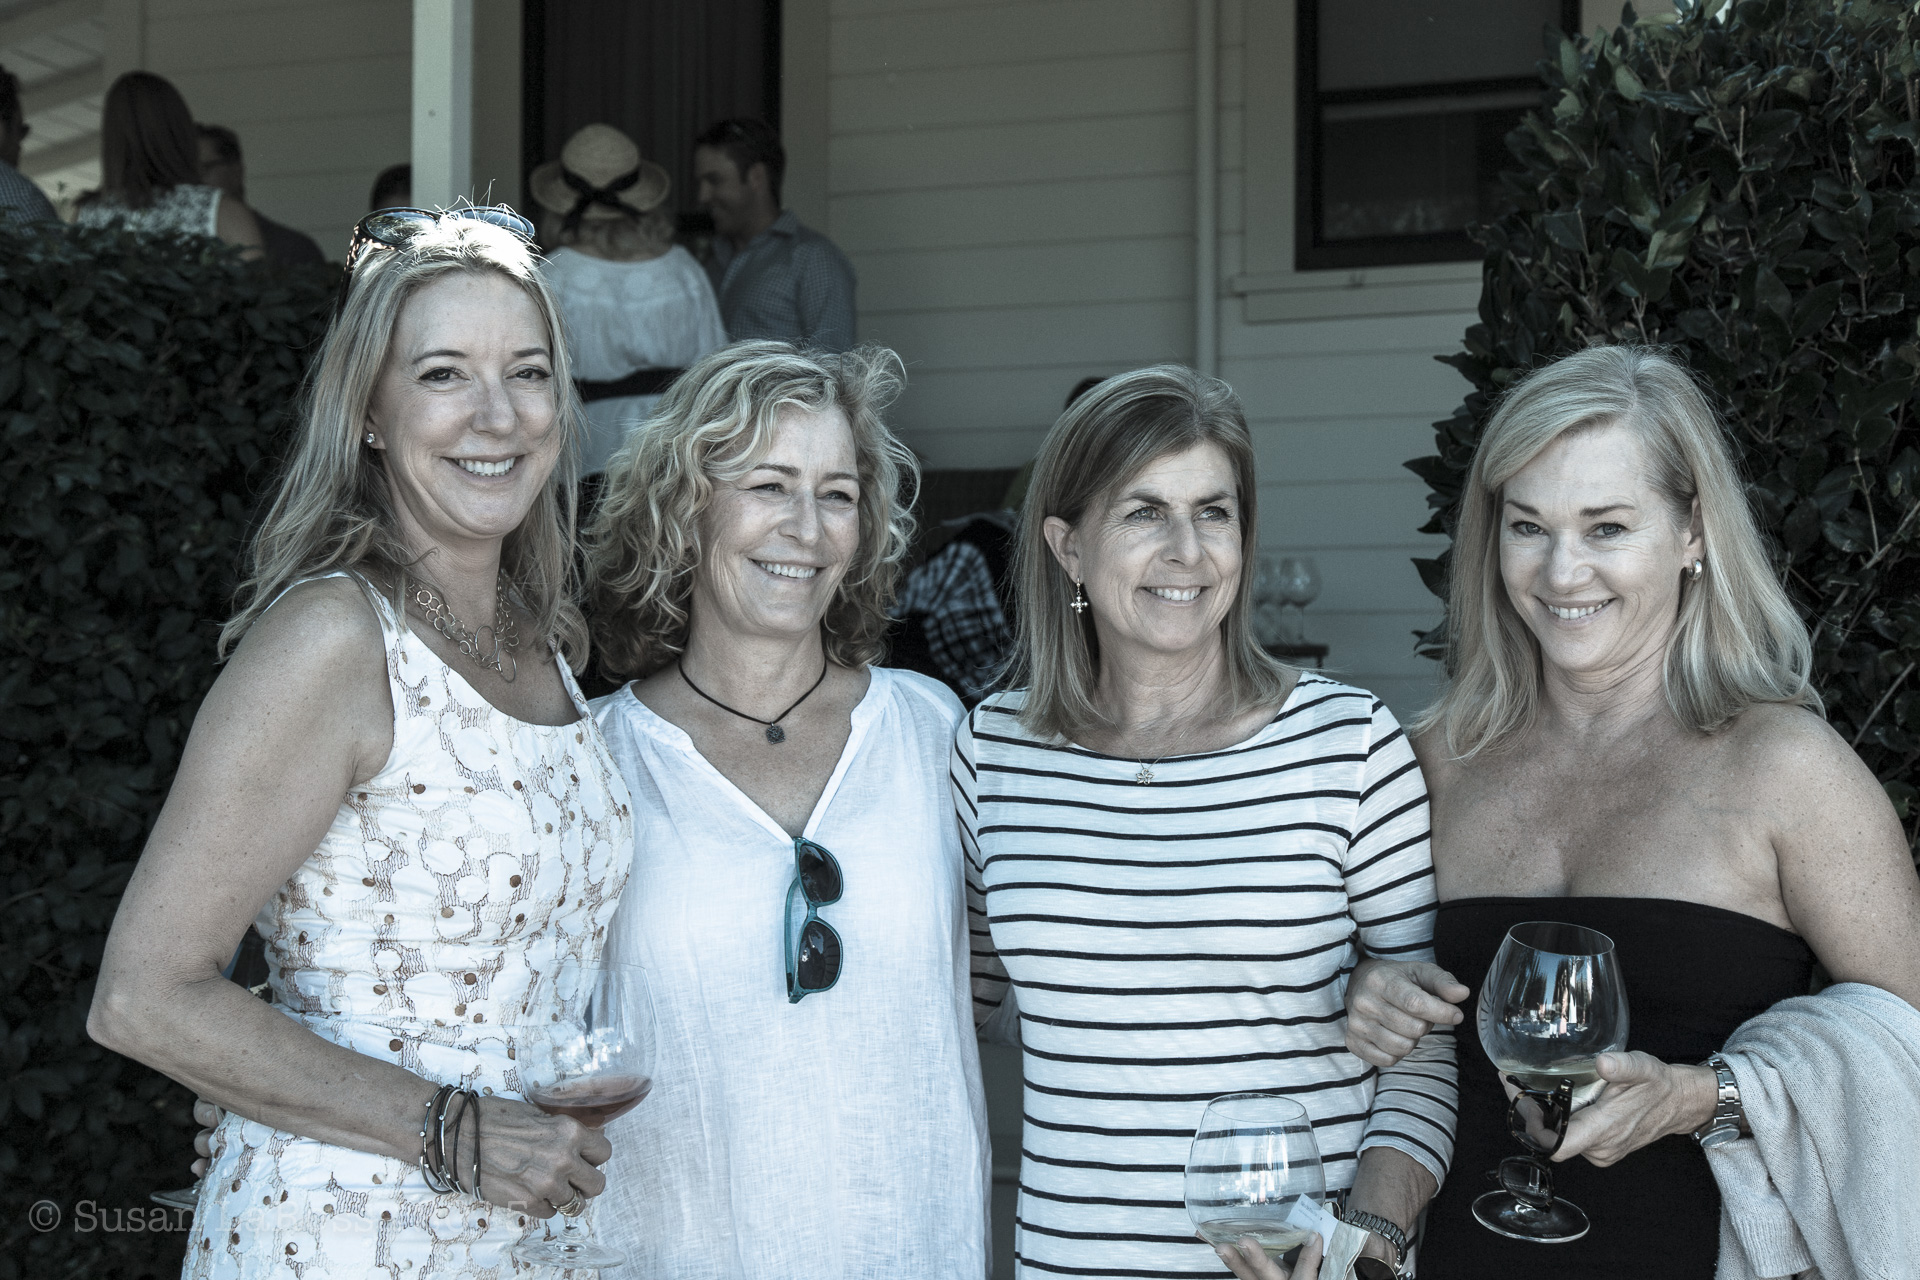 Dunstan Wines owner Ellie Phipps Price and friends